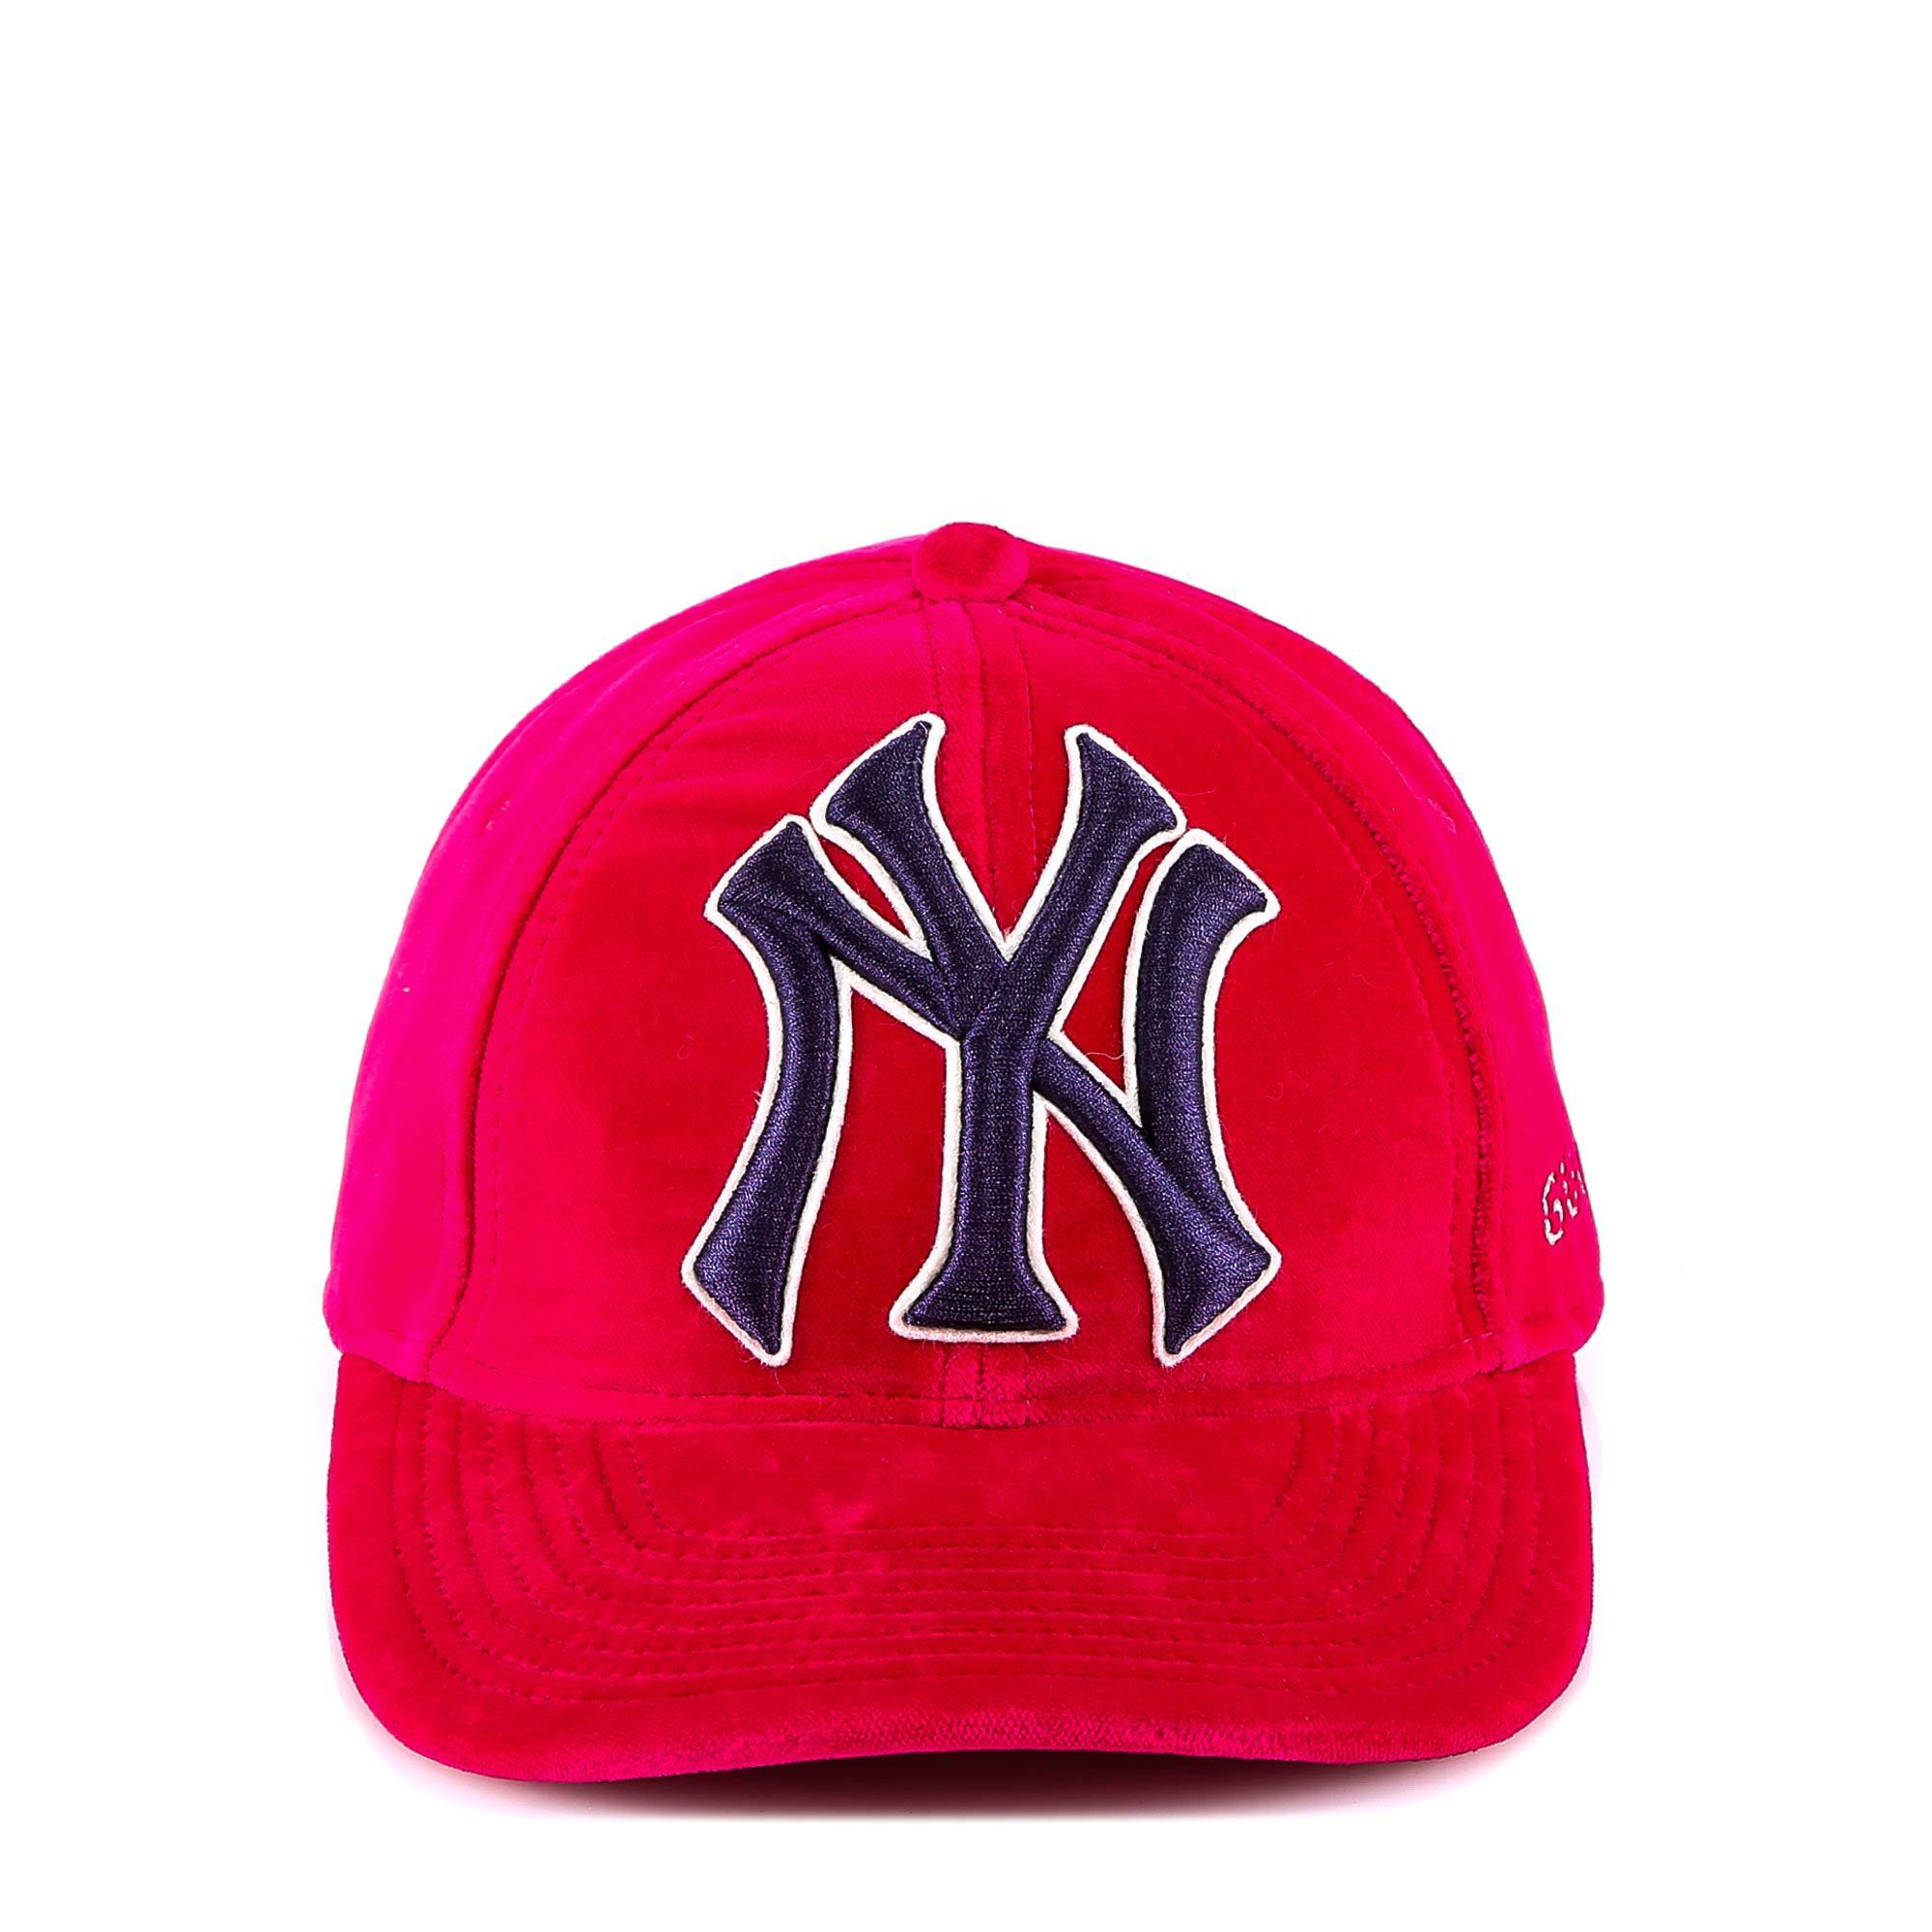 Lyst - Gucci New York Yankees Embroidered Cap in Pink for Men 5981f0b2b66a